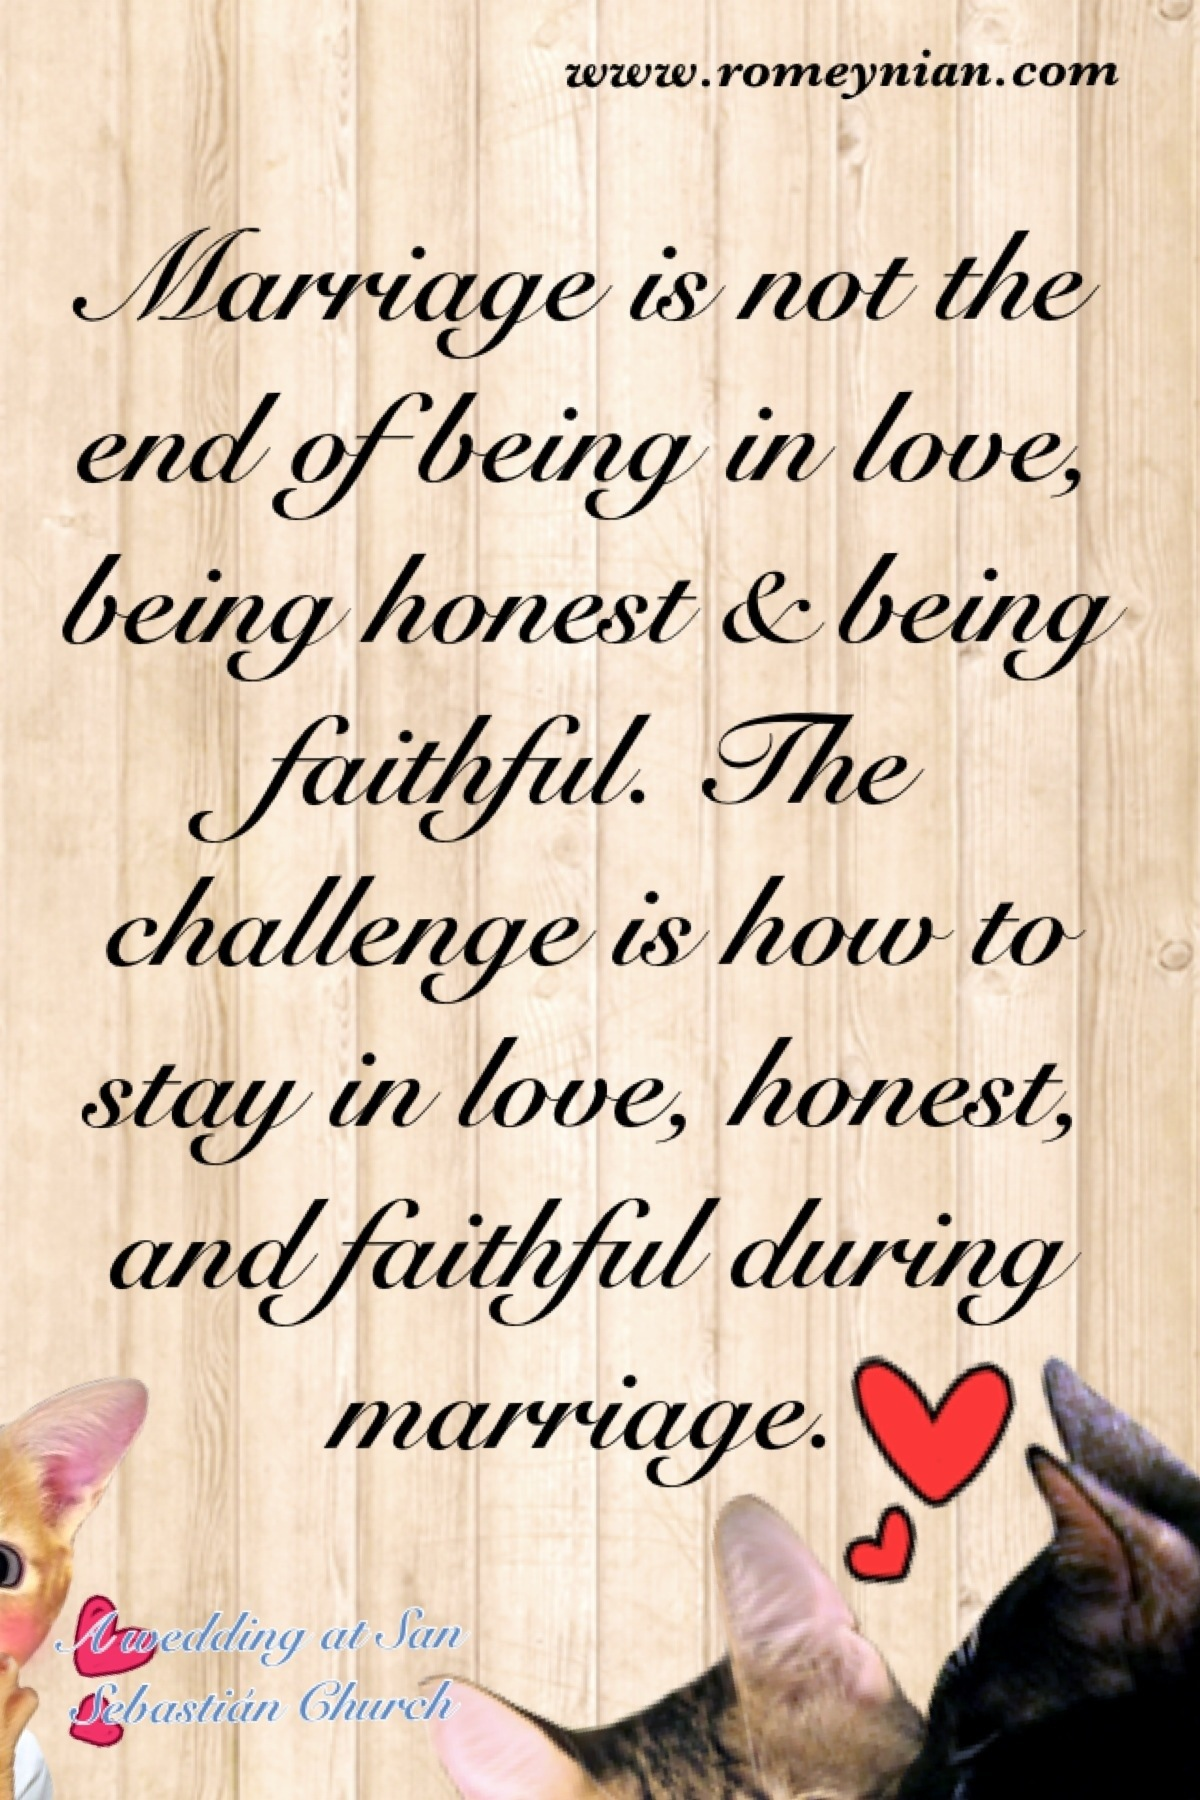 church fidelity honesty in love love marriage quotes ...